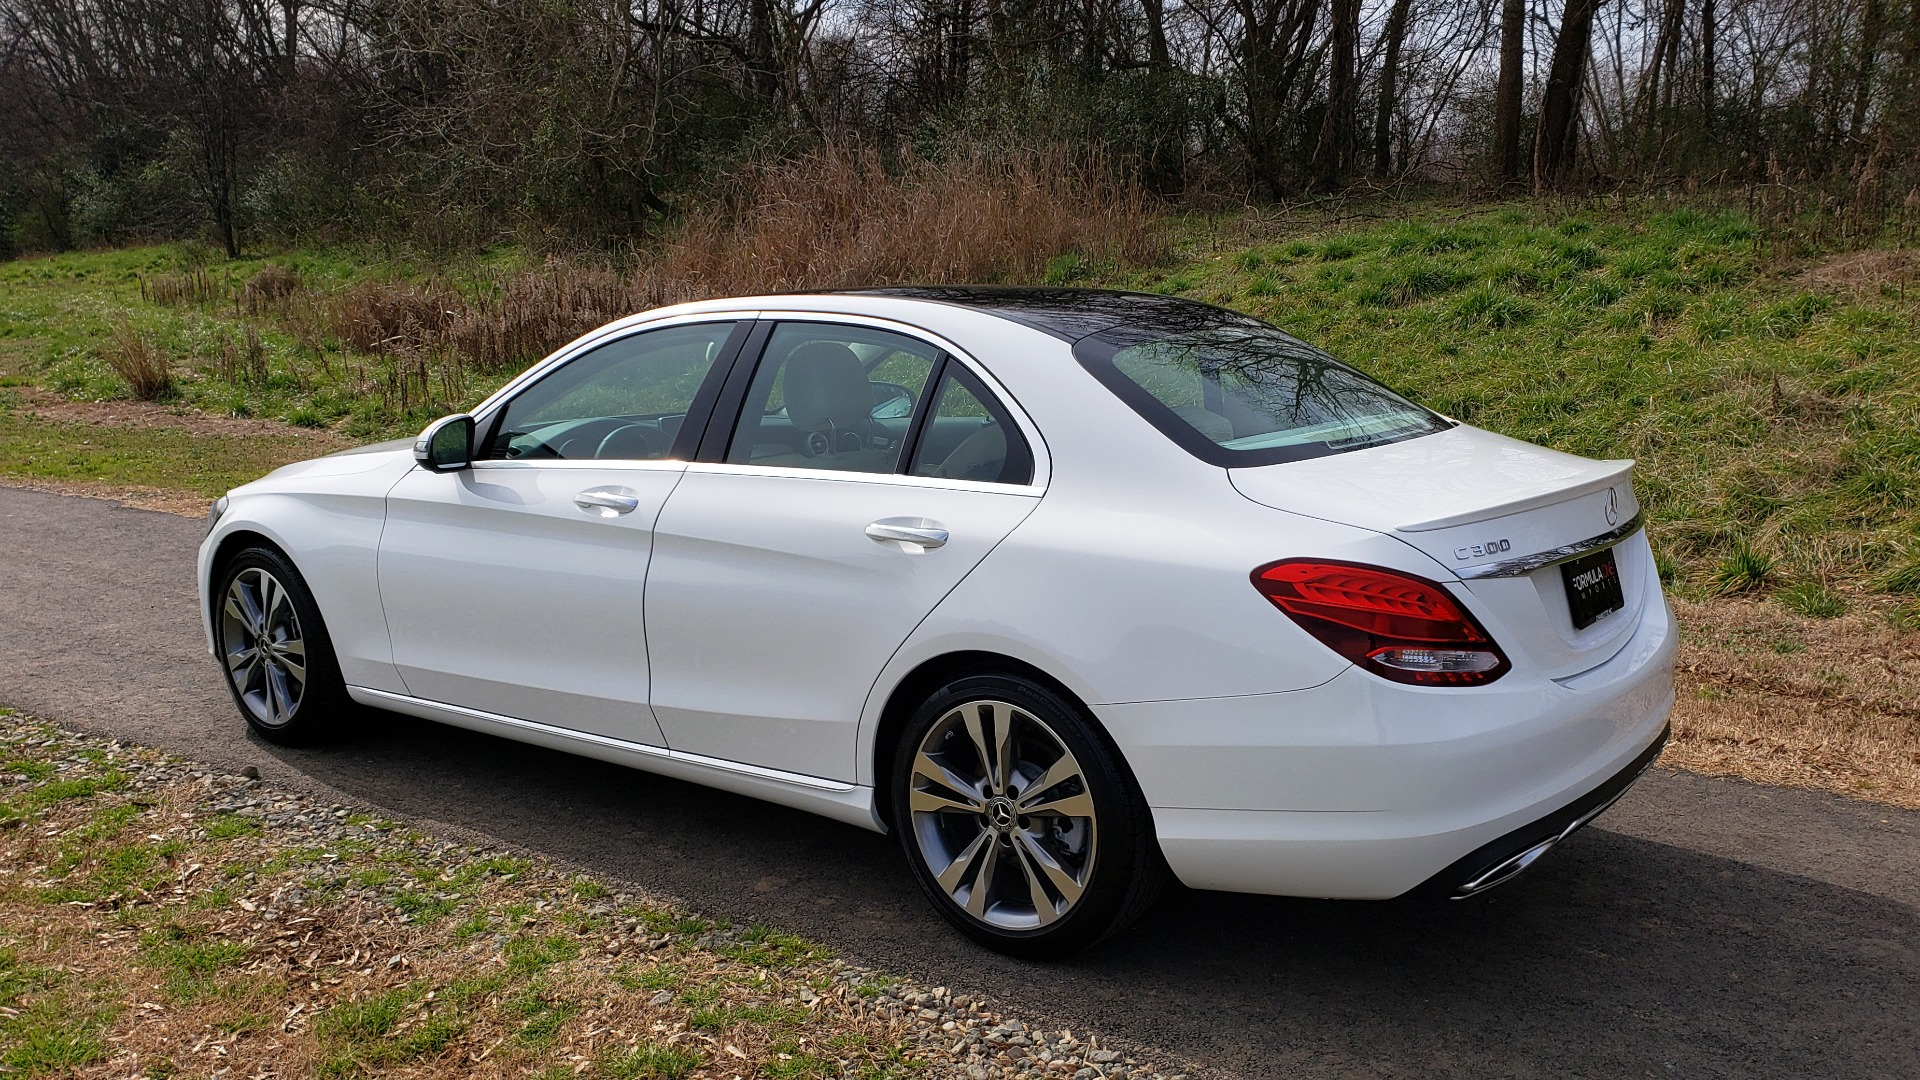 Used 2017 Mercedes-Benz C-CLASS C 300 / PREM PKG / PANO-ROOF / REARVIEW / HTD STS for sale Sold at Formula Imports in Charlotte NC 28227 3